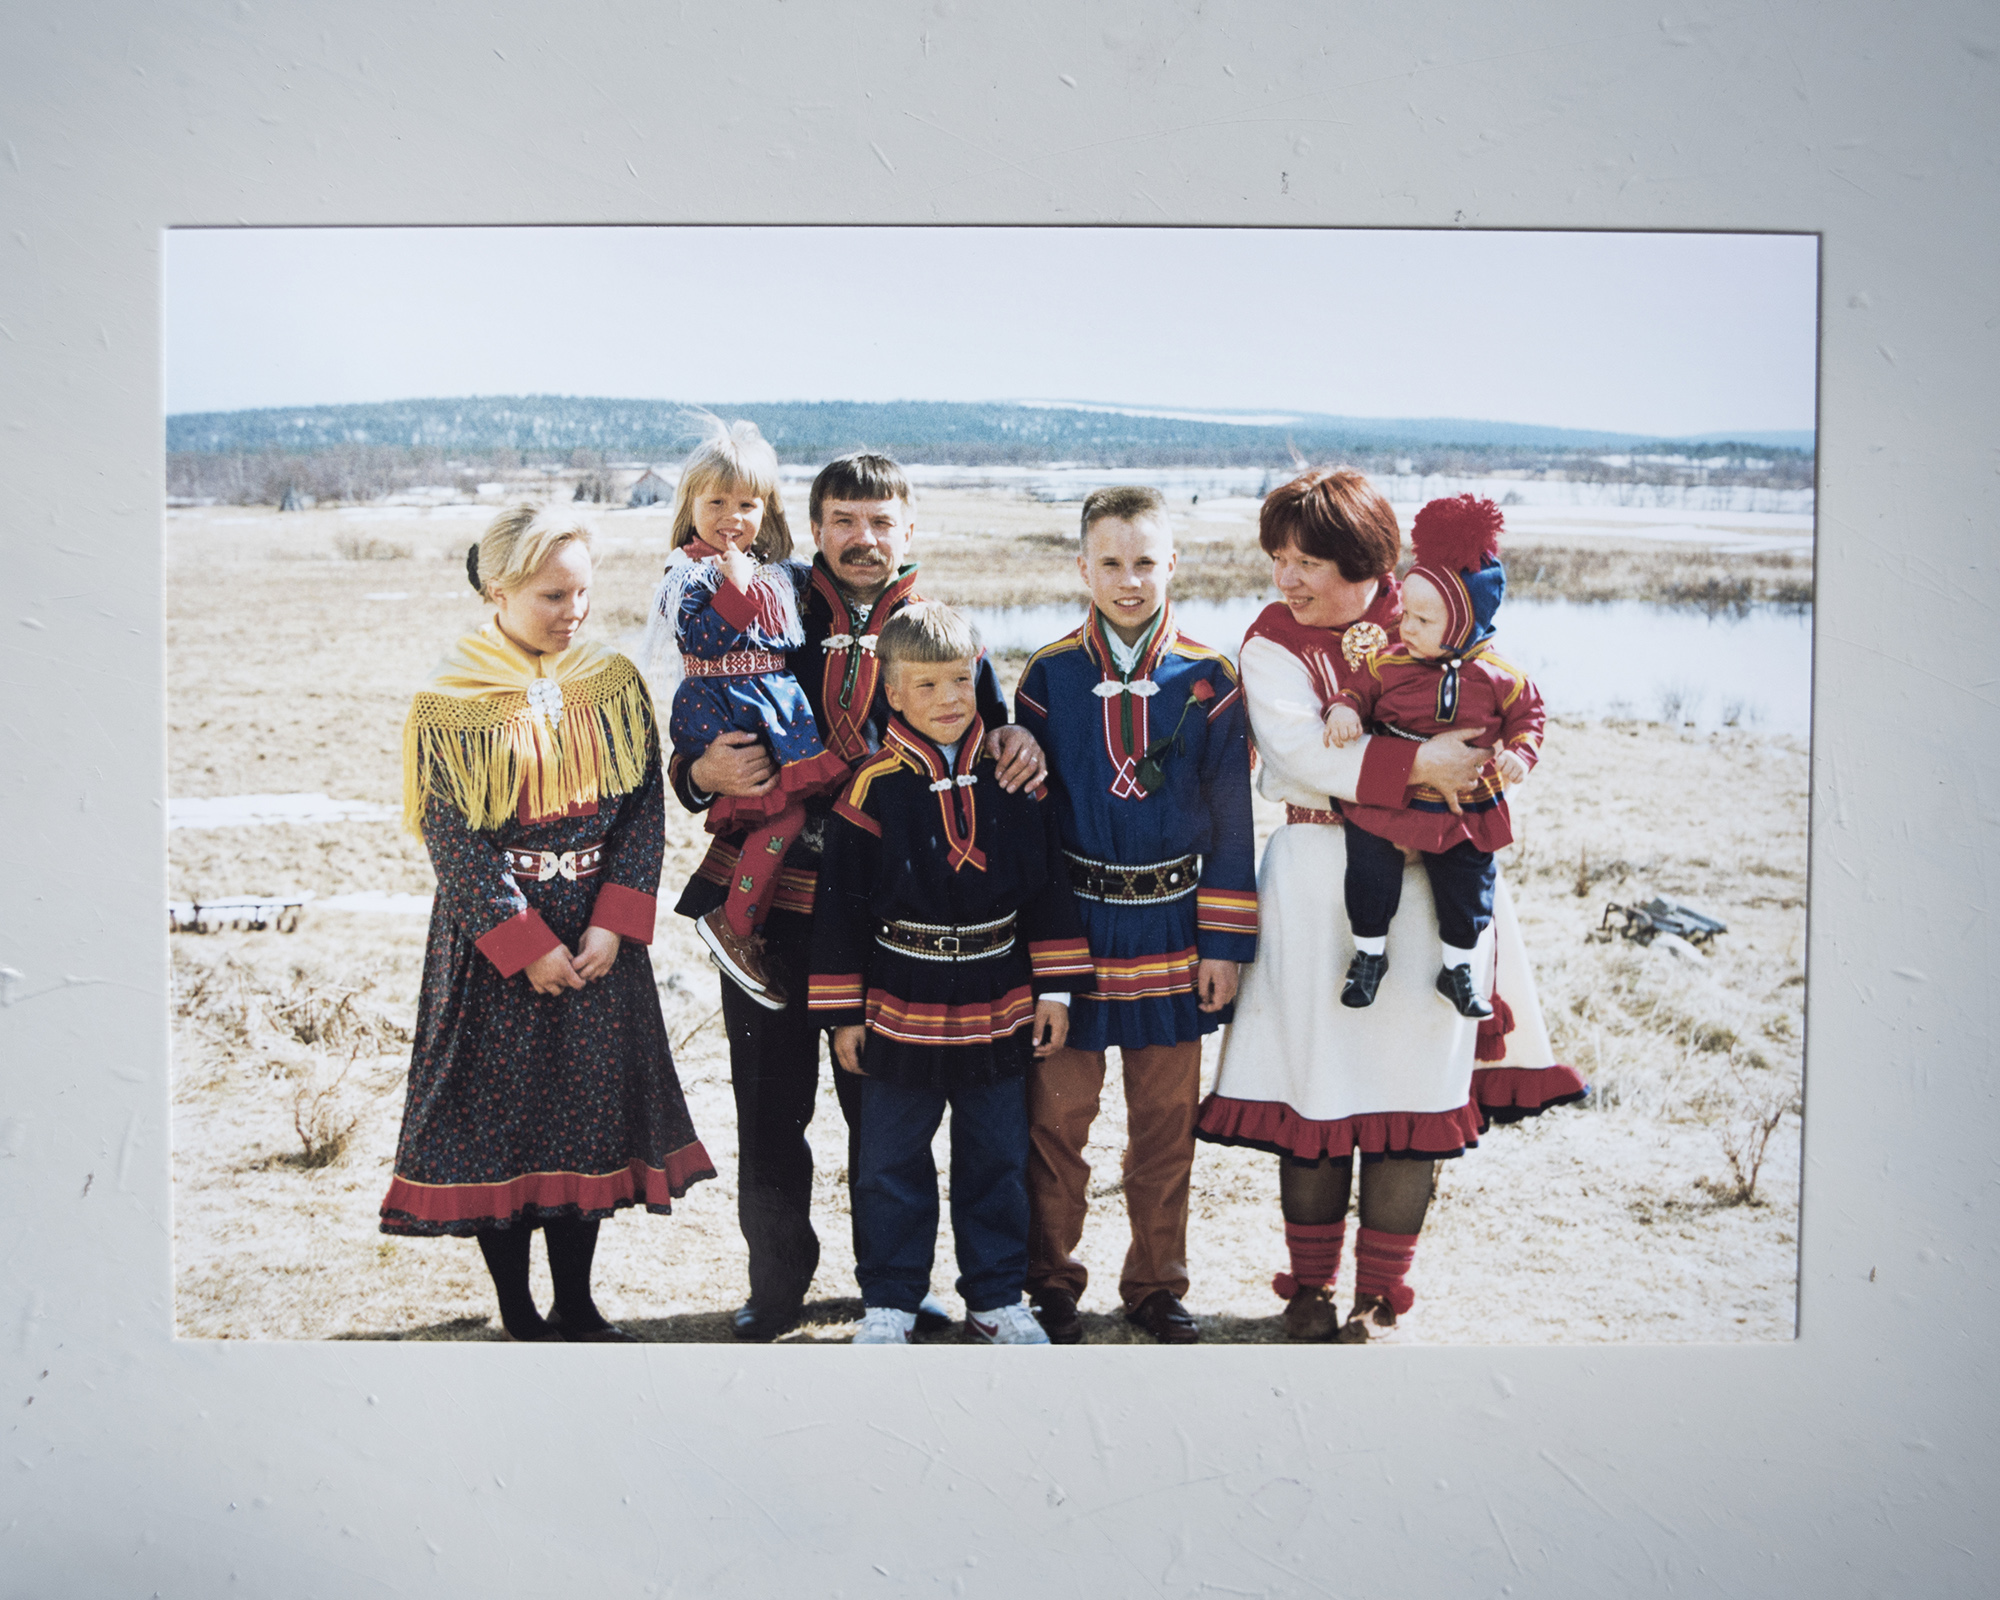 The Marainen family photographed in the early 90's. They are dressed in their traditional gáktis, on the day of Simon Issát's (third from the right) confirmation.  The family suffered great loss in 2014 when two of their boys, Gustu and Heaika, committed suicide within 10 months of each other. (Camilla Andersen/GroundTruth)